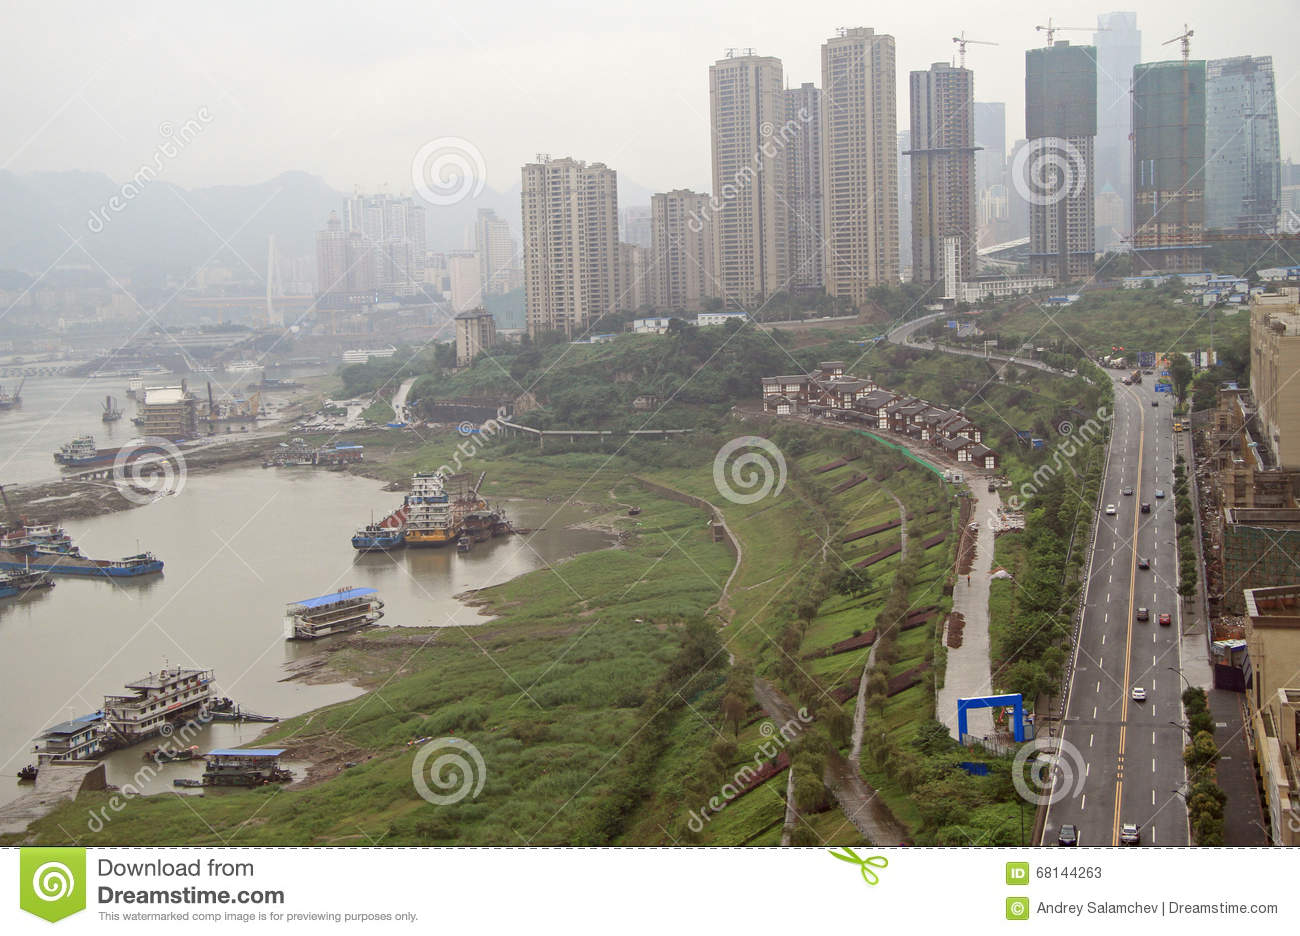 Paysage urbain de ville chongqing chine photo stock for Paysage de ville